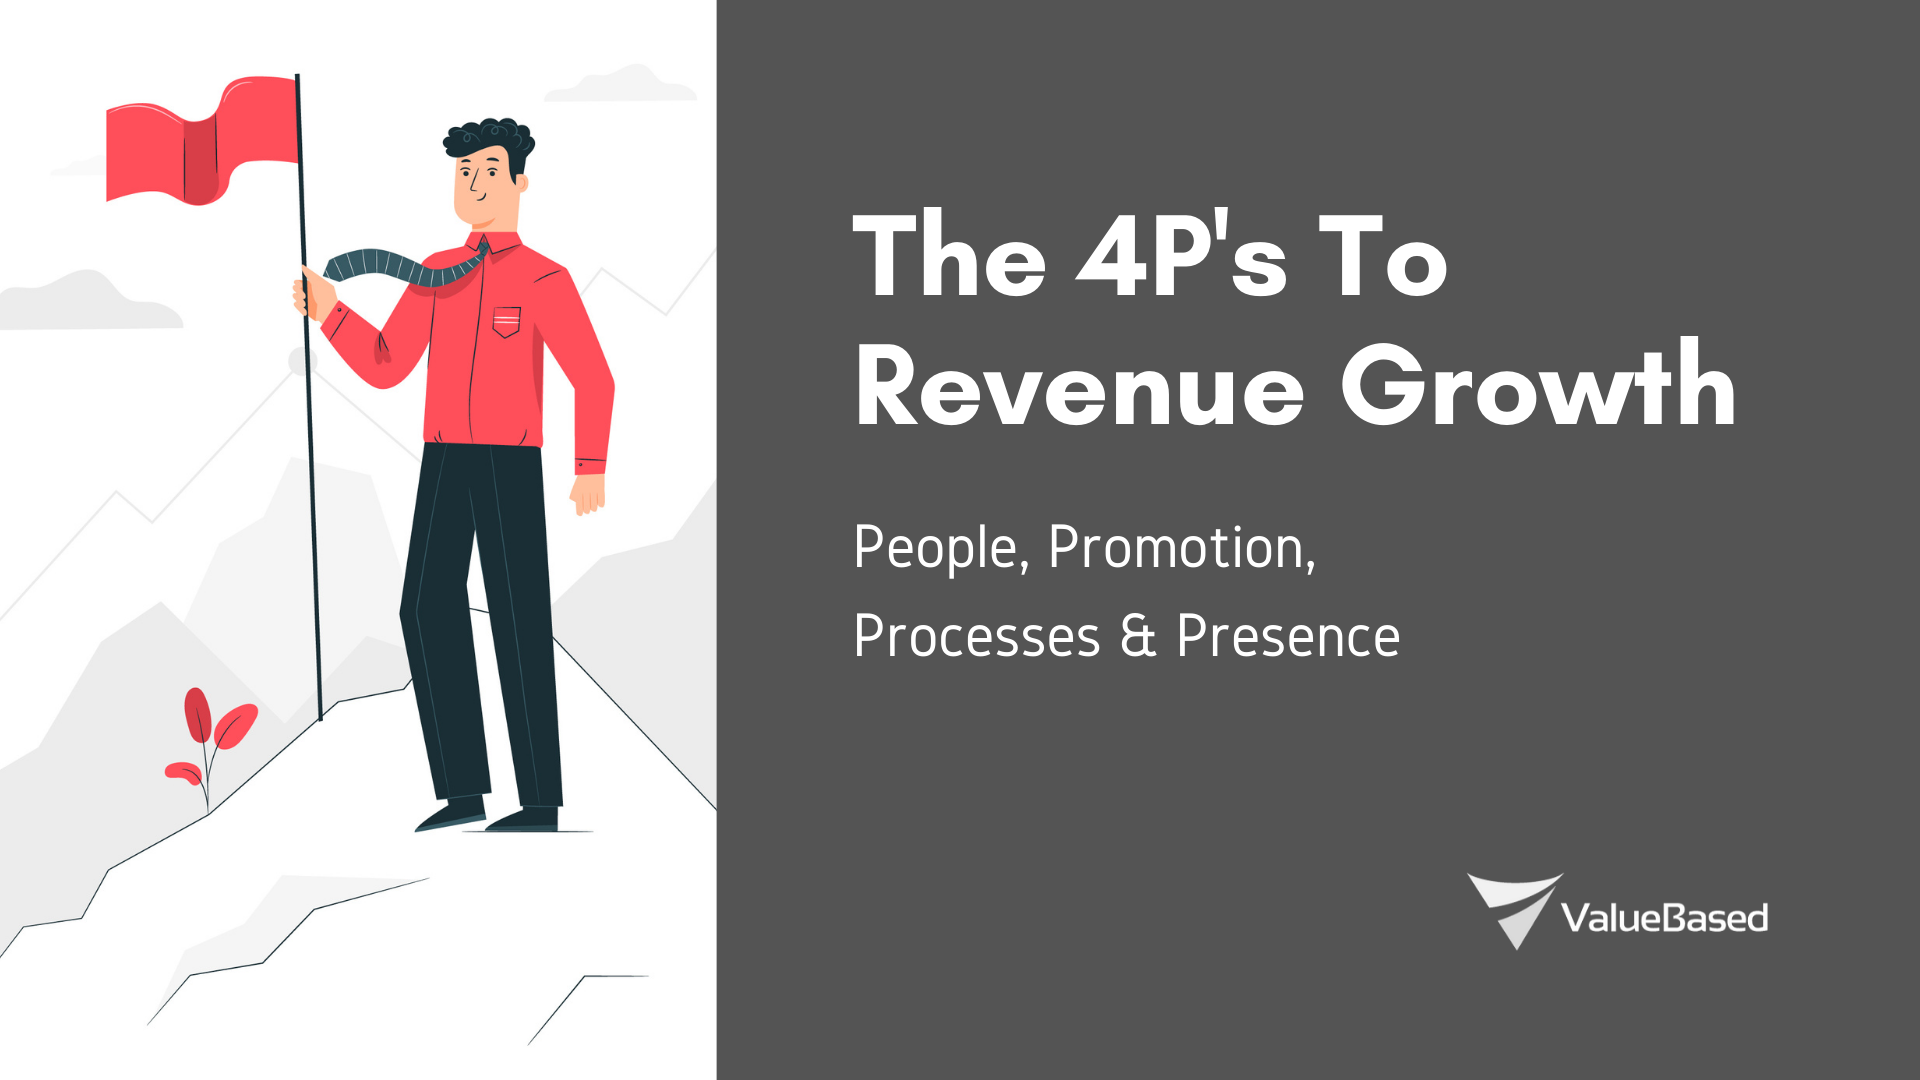 The 4P's To Revenue Growth